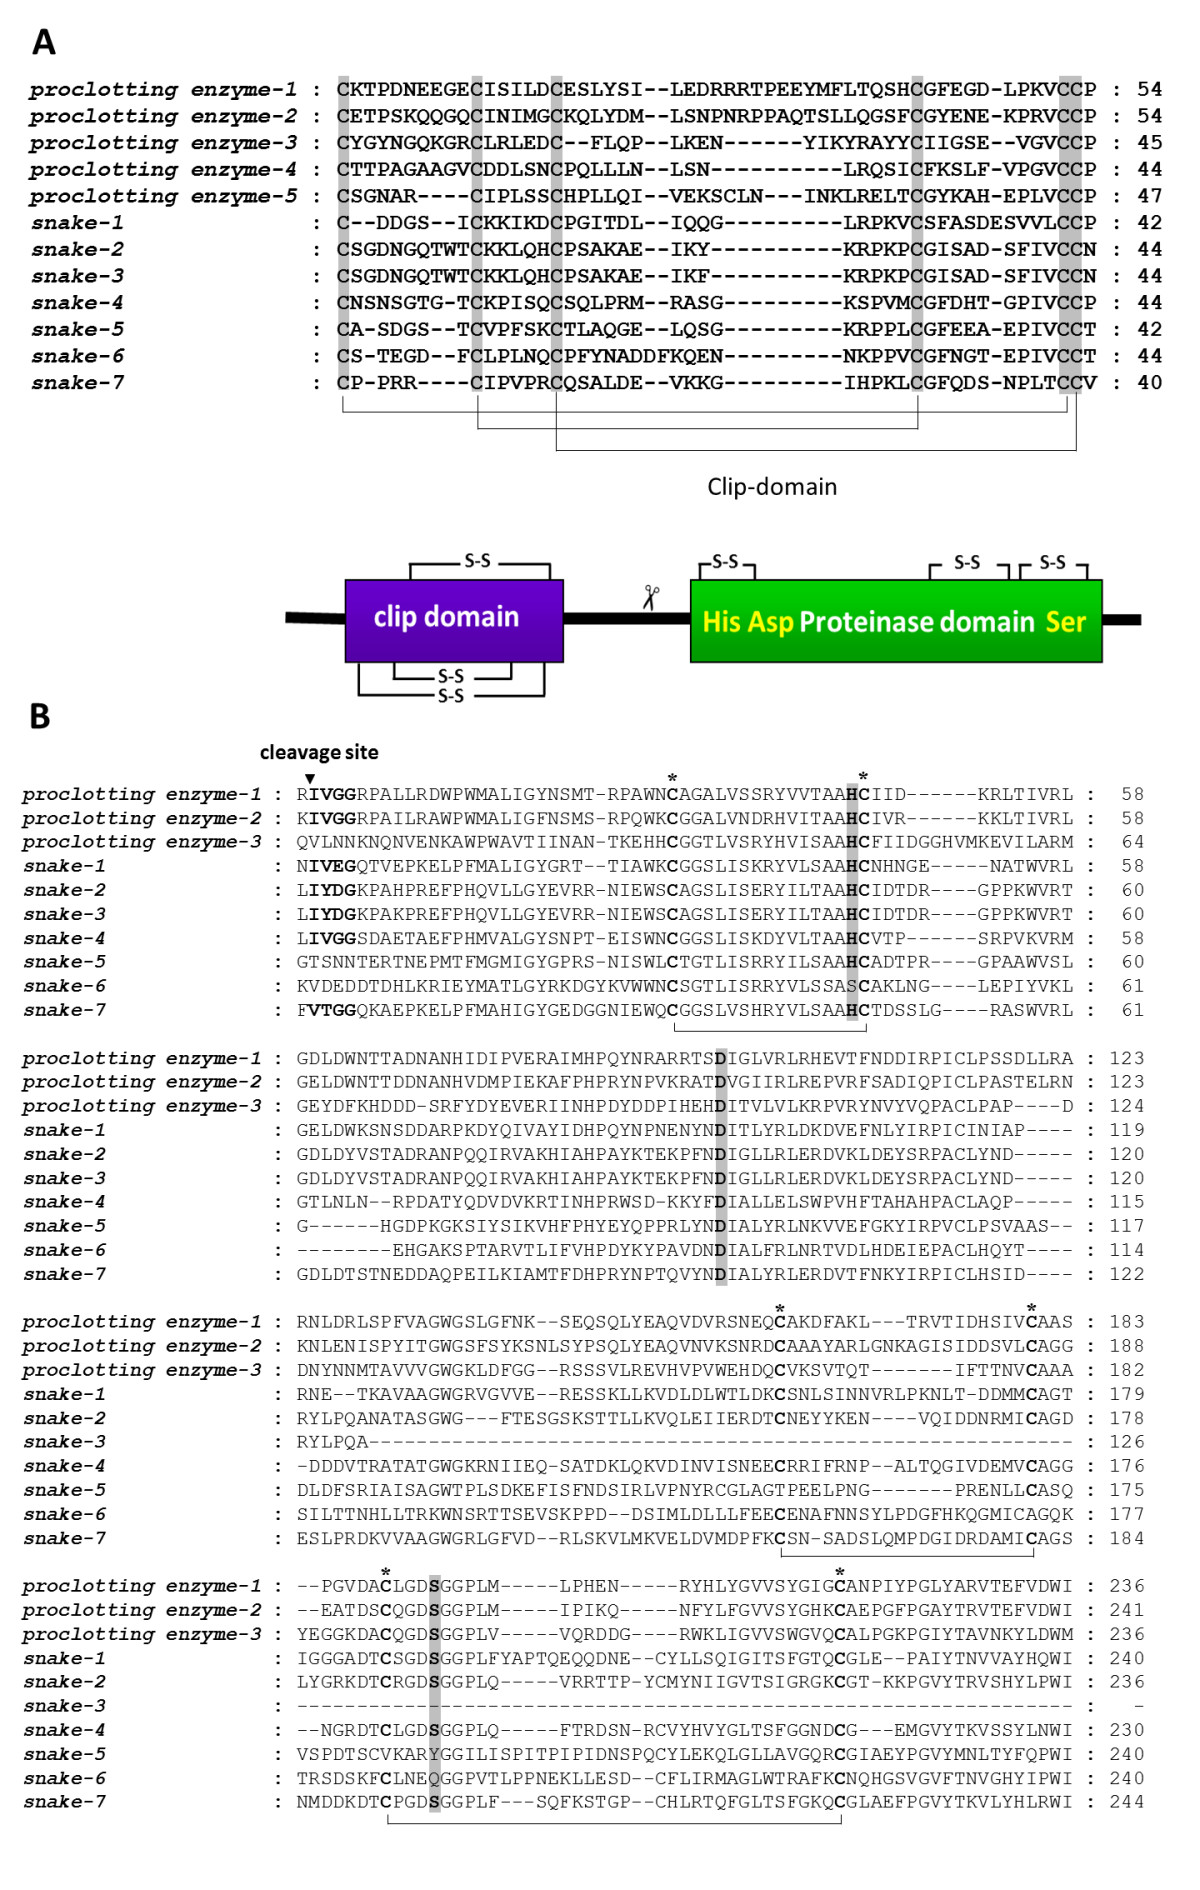 https://static-content.springer.com/image/art%3A10.1186%2F1471-2164-14-160/MediaObjects/12864_2012_Article_4871_Fig8_HTML.jpg